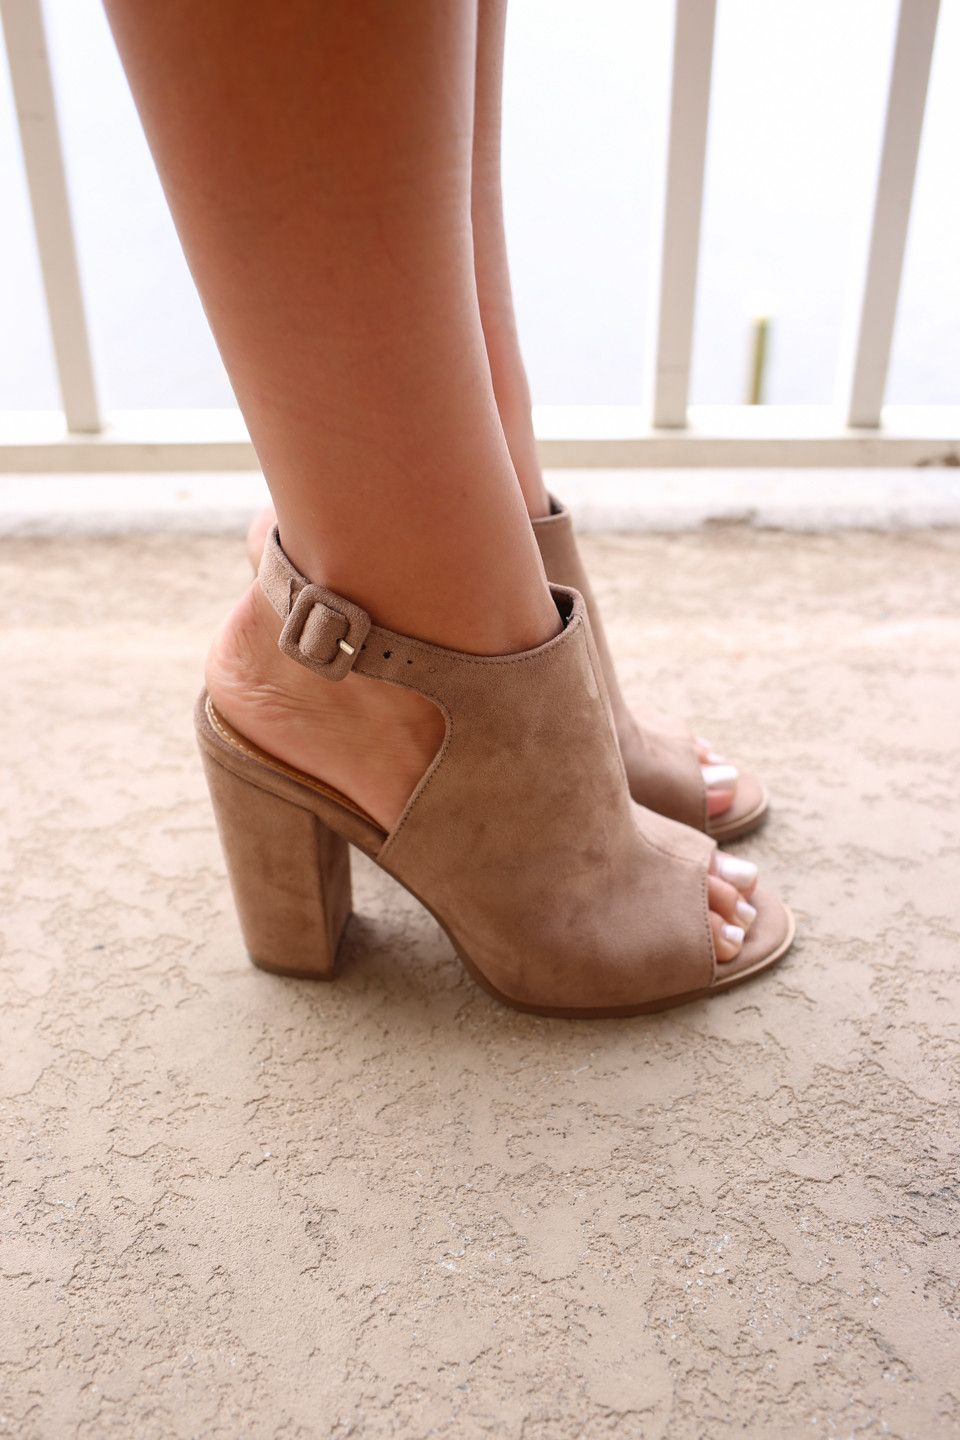 a1a78ce161b Cute faux suede block heels - Heel height is 4 inches - Has a chunky ...